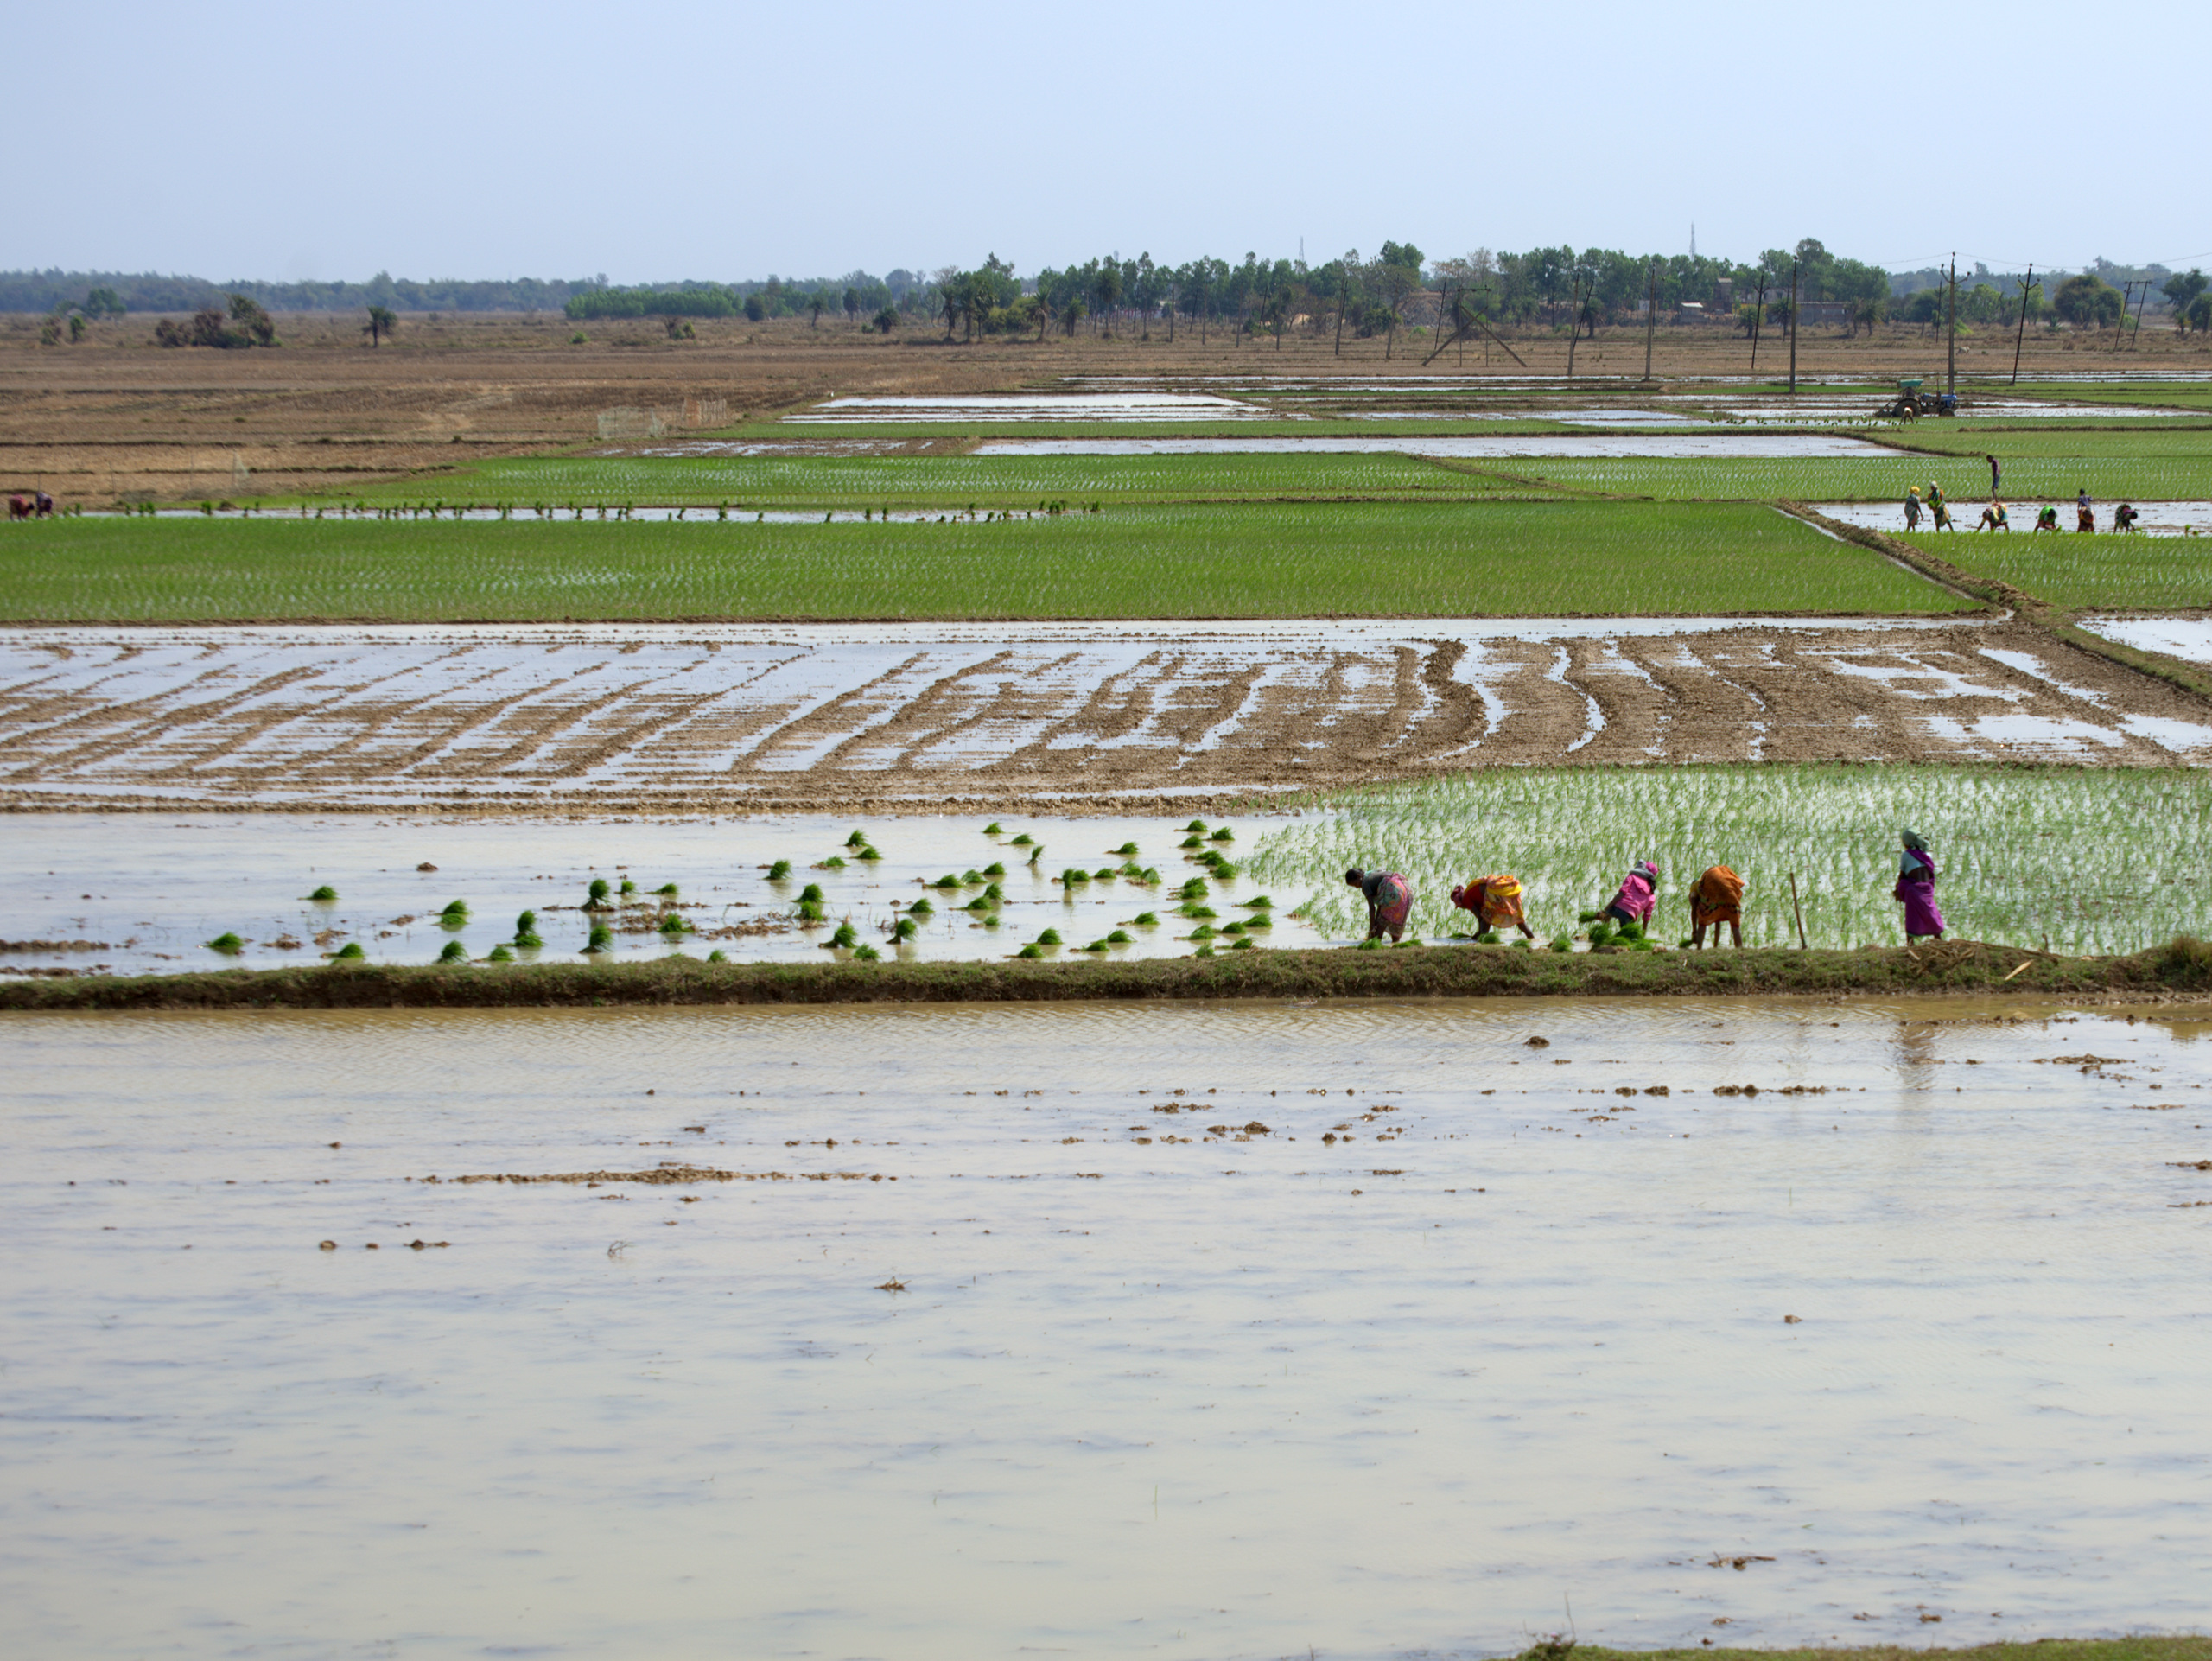 Farmers work on rice paddies. (Photo: Dakshinamurthy Vedachalam/CIMMYT)